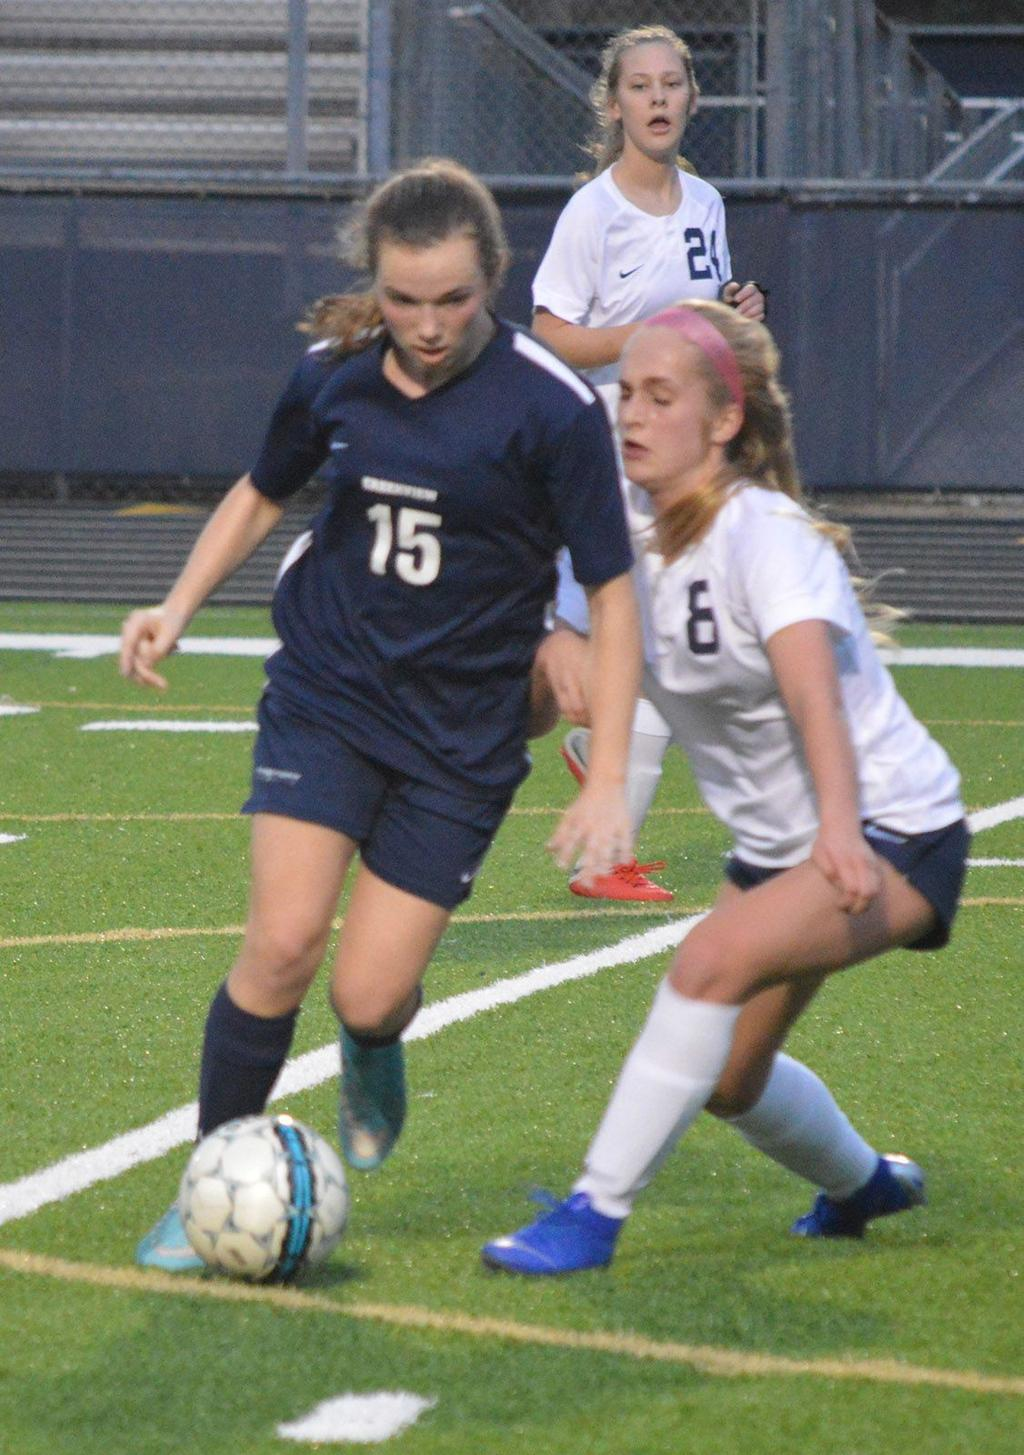 Girls Varsity Soccer (3/1) The Lady Knights played tough against Creekview, holding them to the